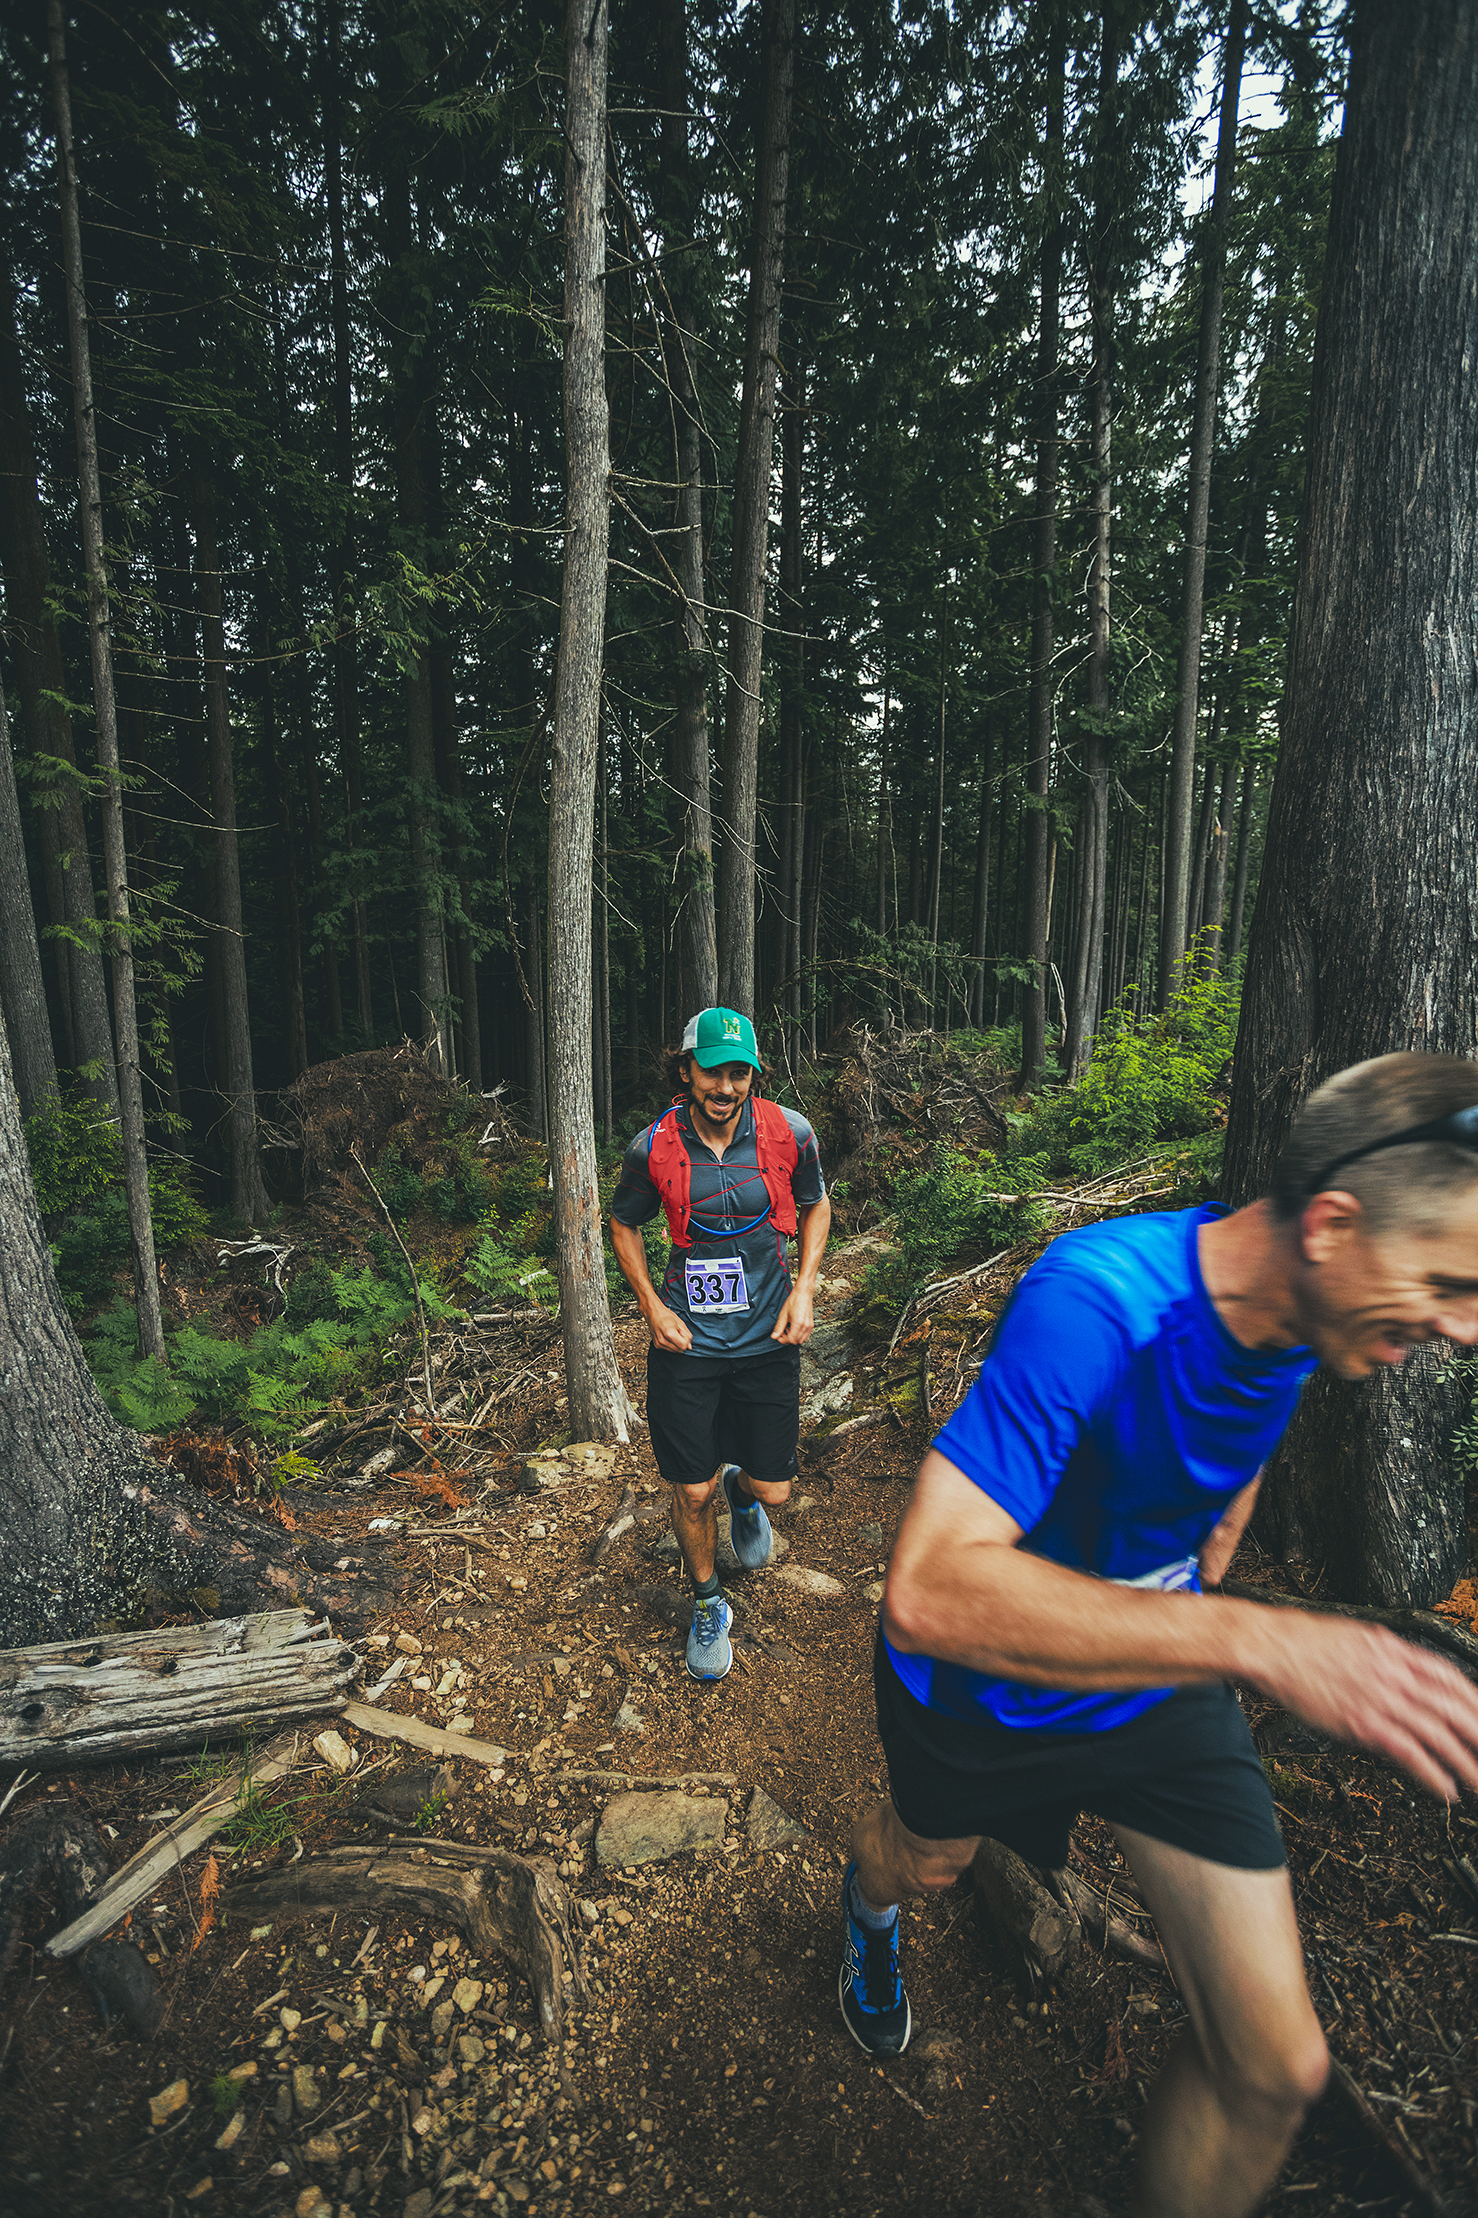 Fraser Valley Trail Races - Bear Mountain - IMG_1497 by Brice Ferre Studio - Vancouver Portrait Adventure and Athlete Photographer.jpg